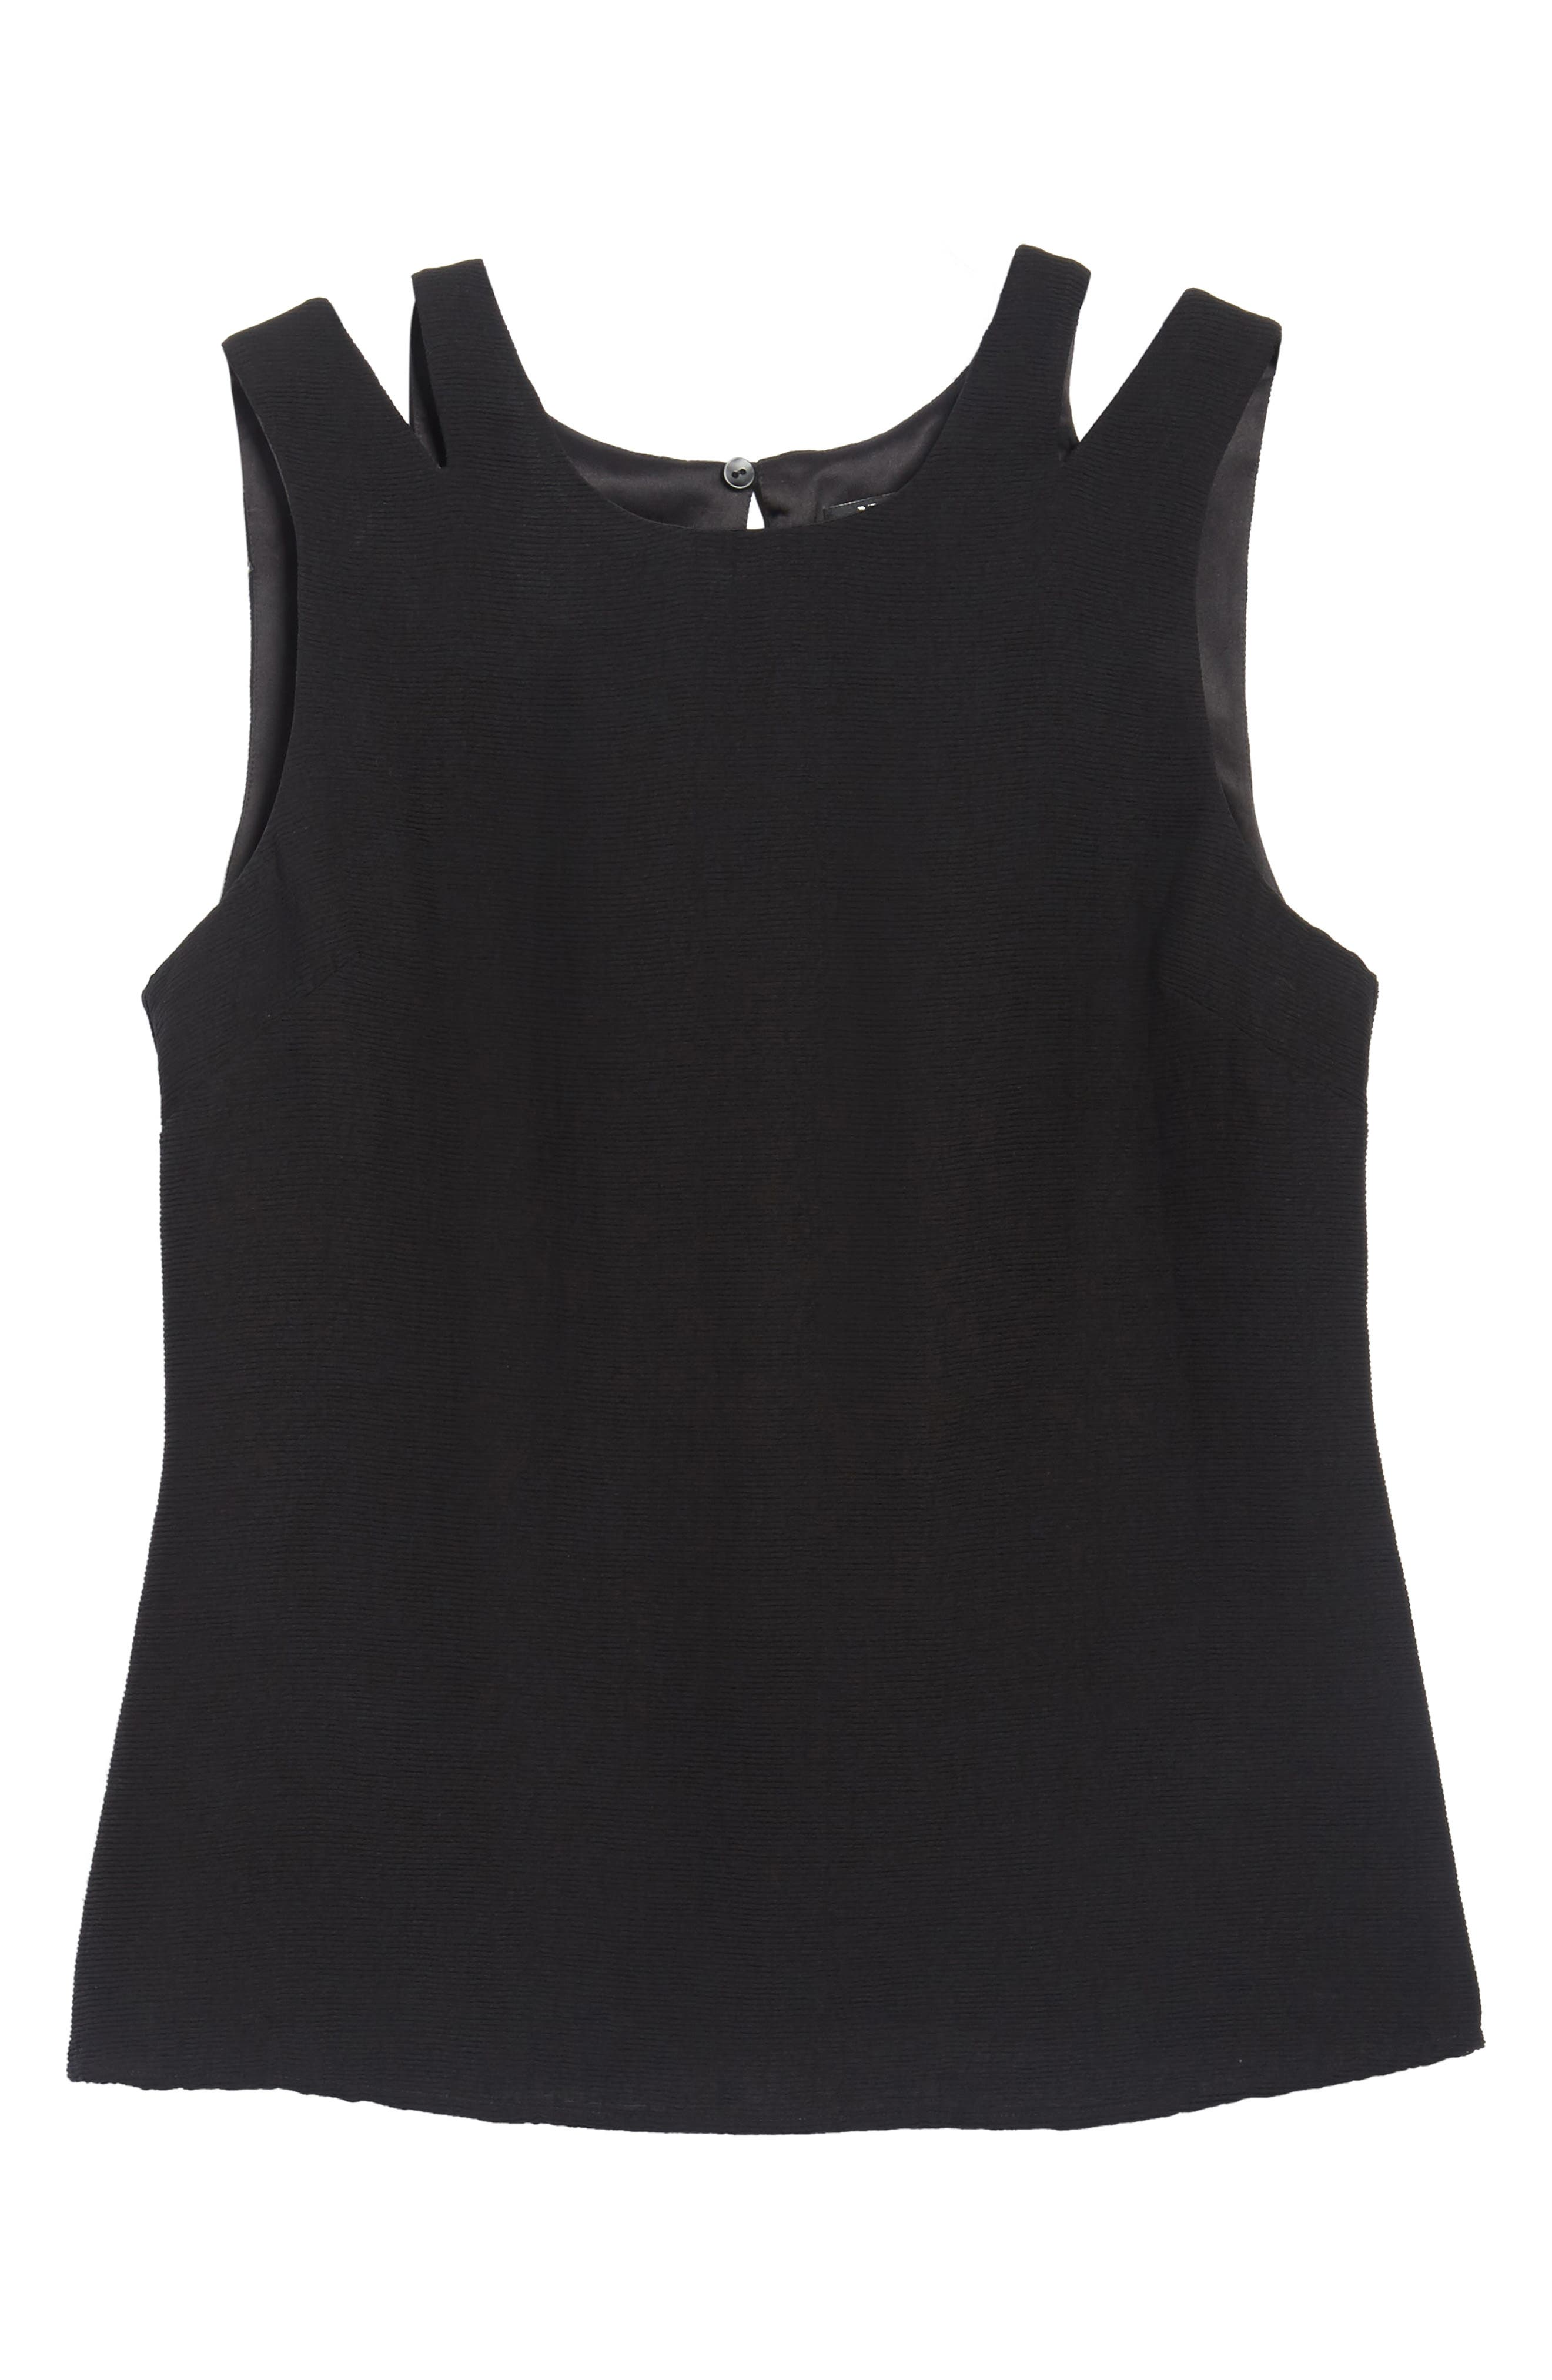 Tiered Texture Tank,                             Alternate thumbnail 6, color,                             Black Onyx